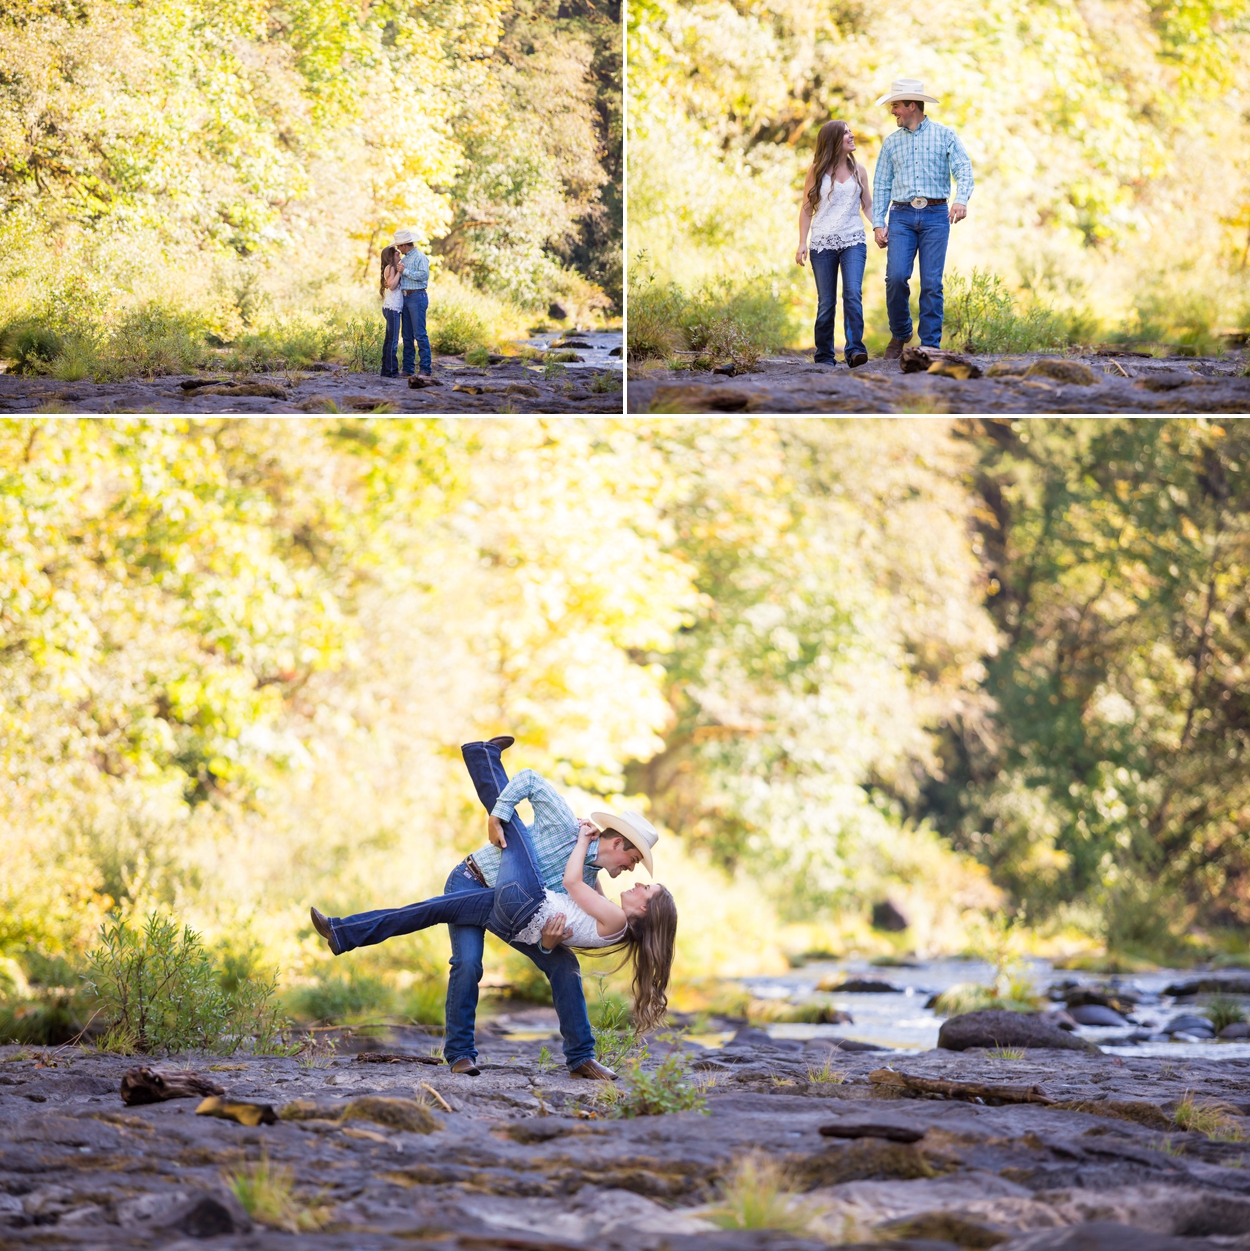 oregon-adventure-engagement-018 Lyndee & Max | Adventure Engagement Session | Iron Mountain Oregon